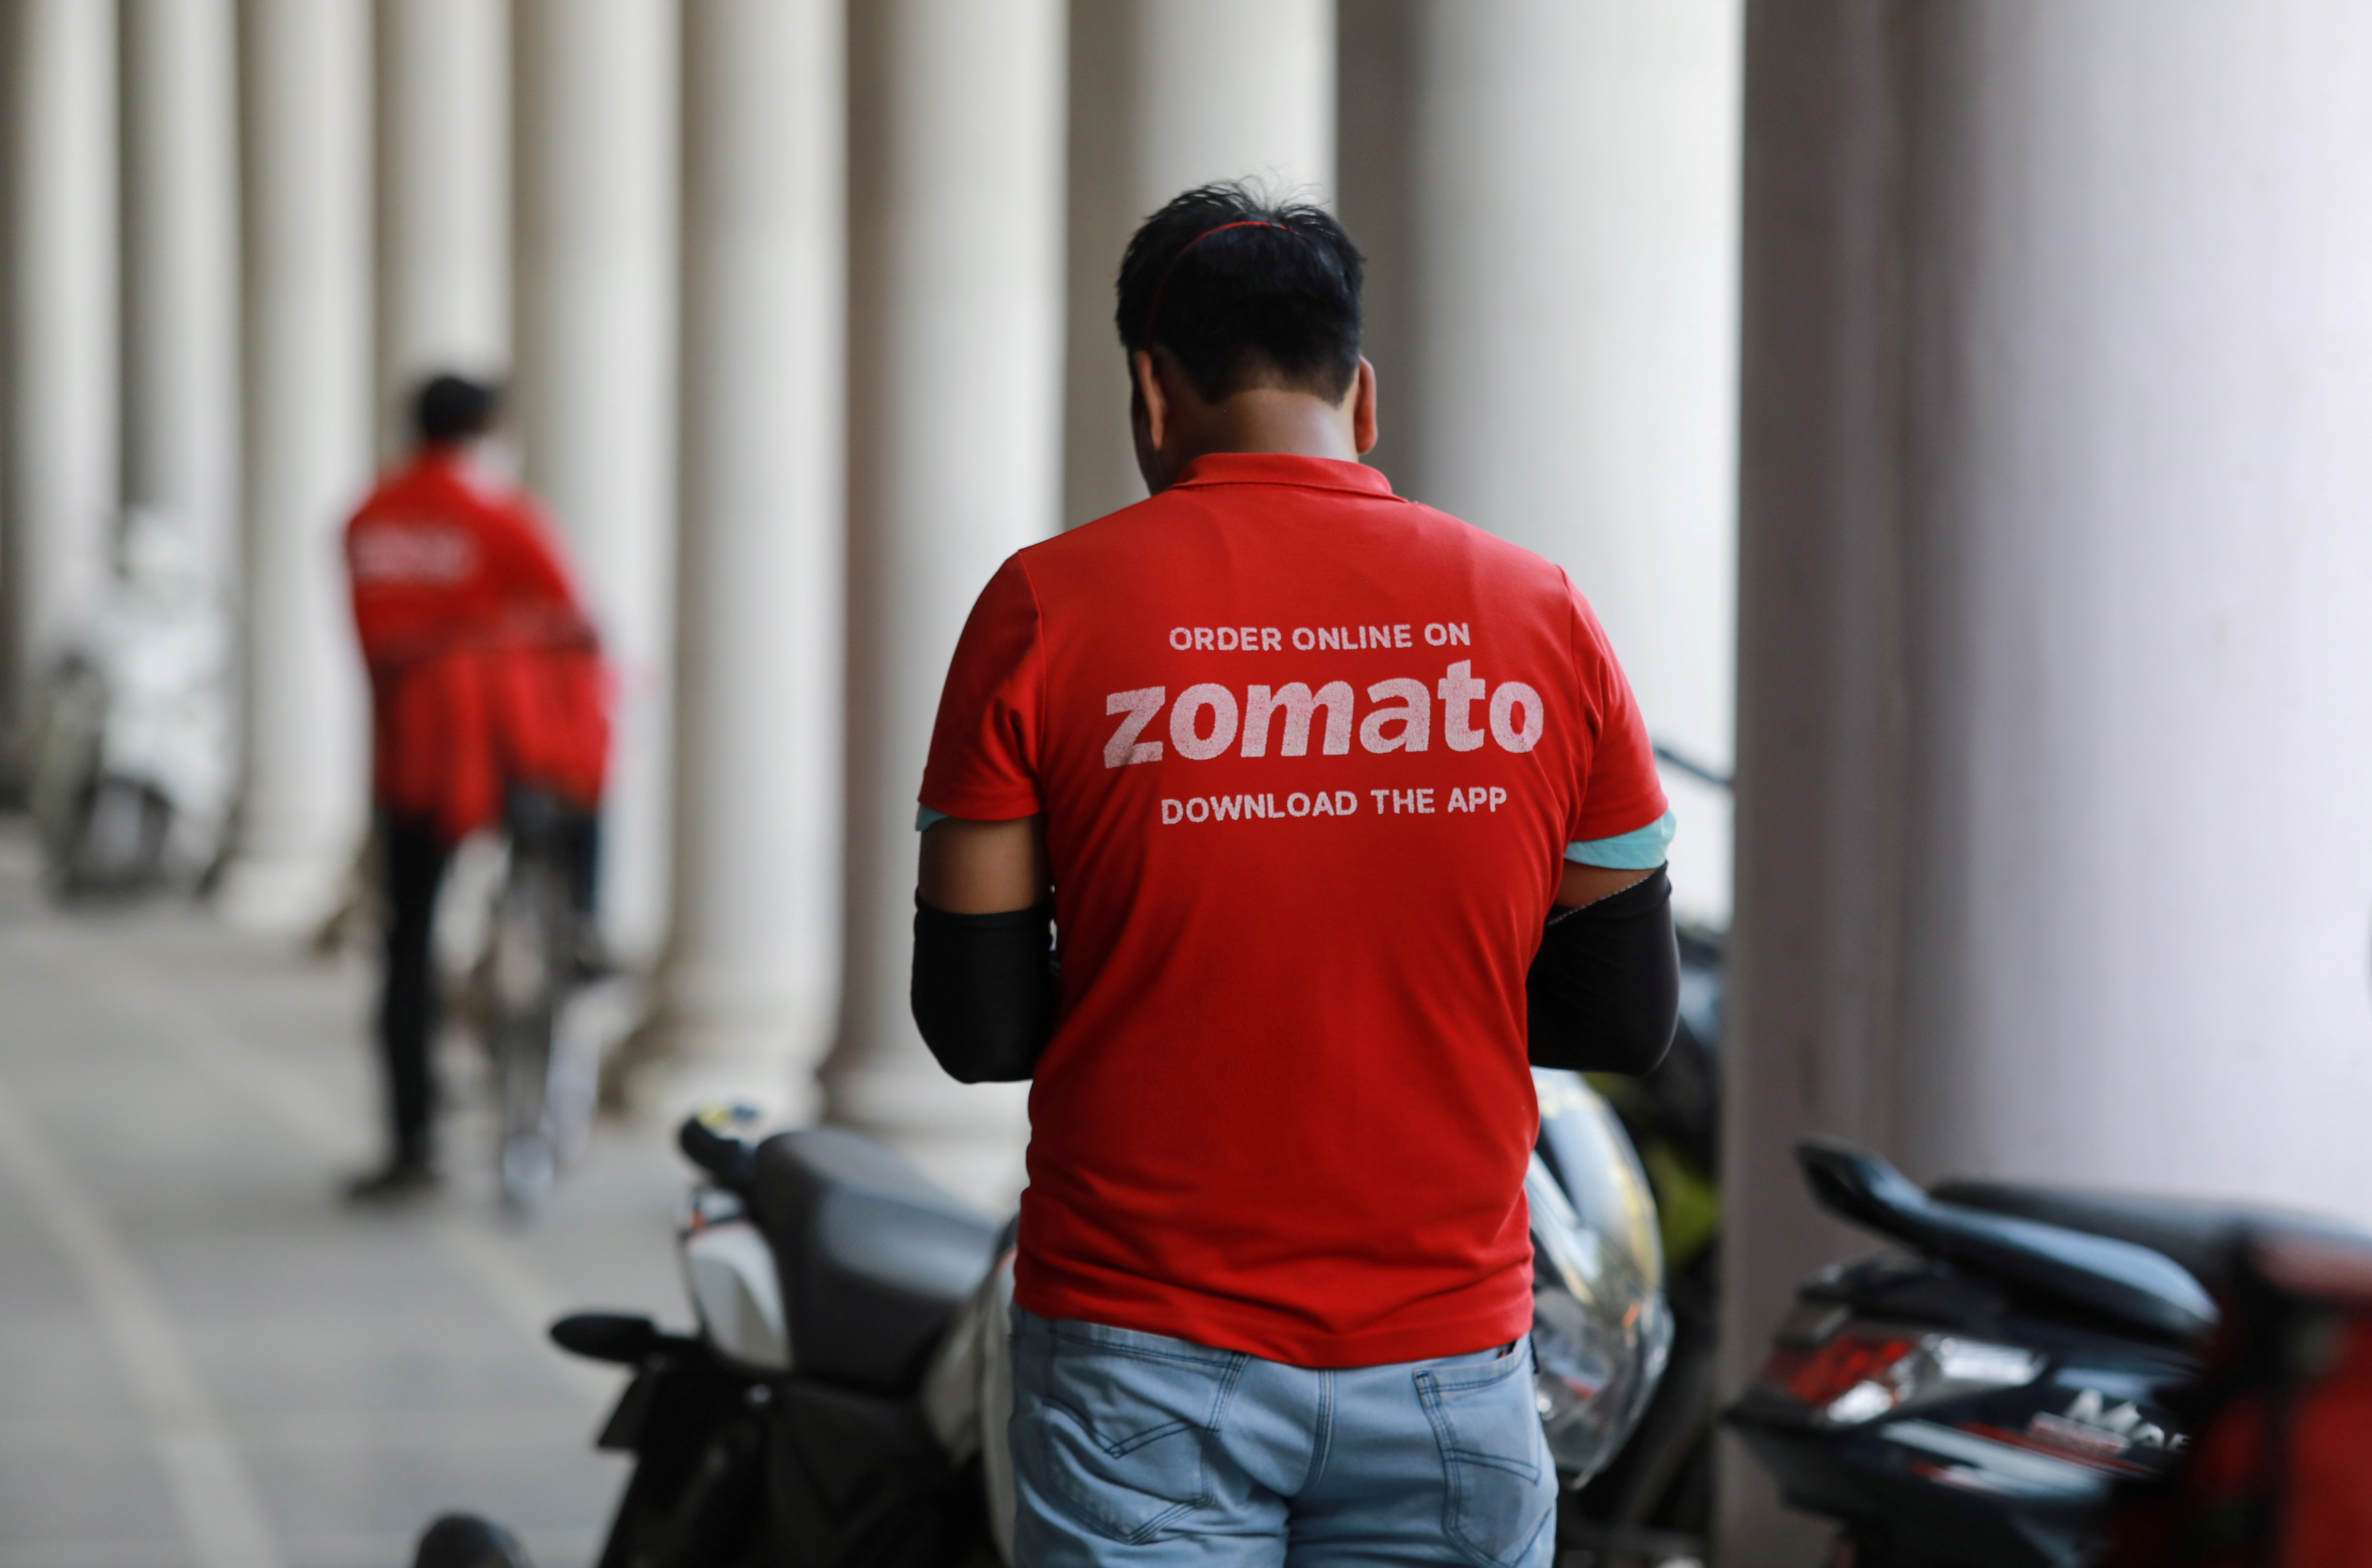 A delivery worker of Zomato, an Indian food-delivery startup, waits to collect an order from a restaurant in New Delhi, India, May 21, 2020. REUTERS/Anushree Fadnavis/File Photo